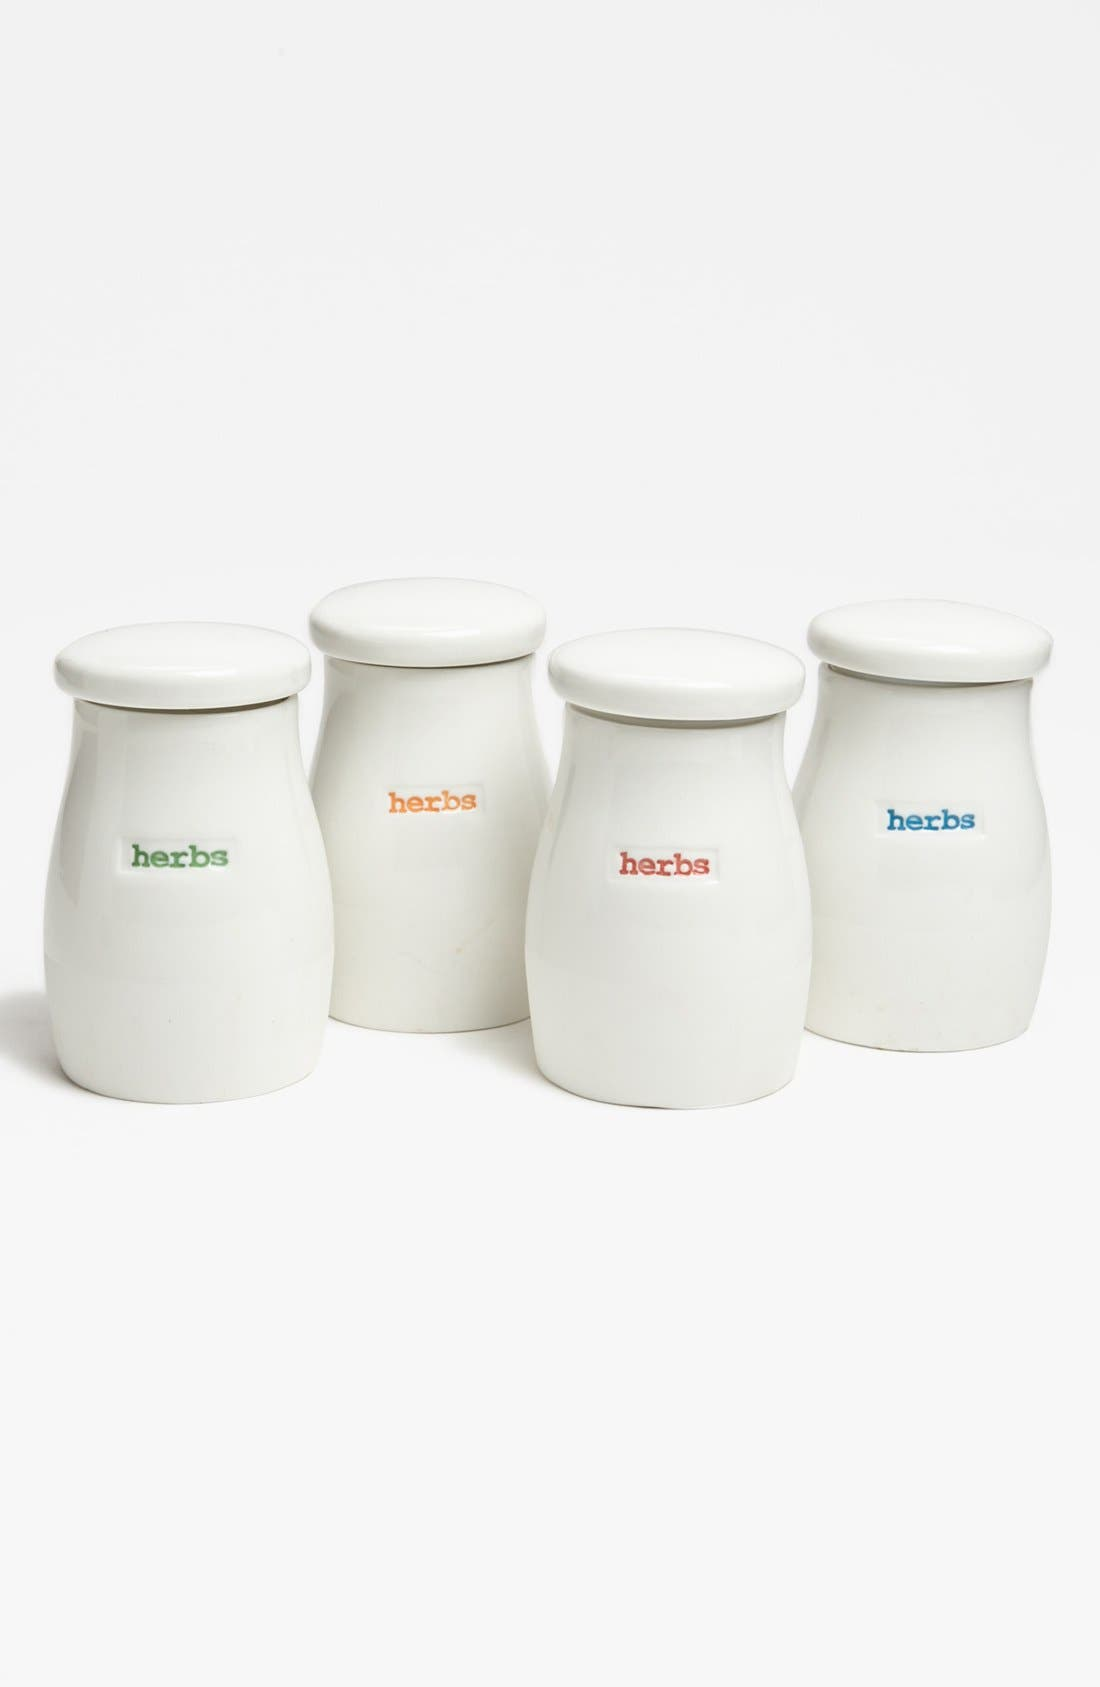 Main Image - 'Word Range' Porcelain Herb Jars (Set of 4)